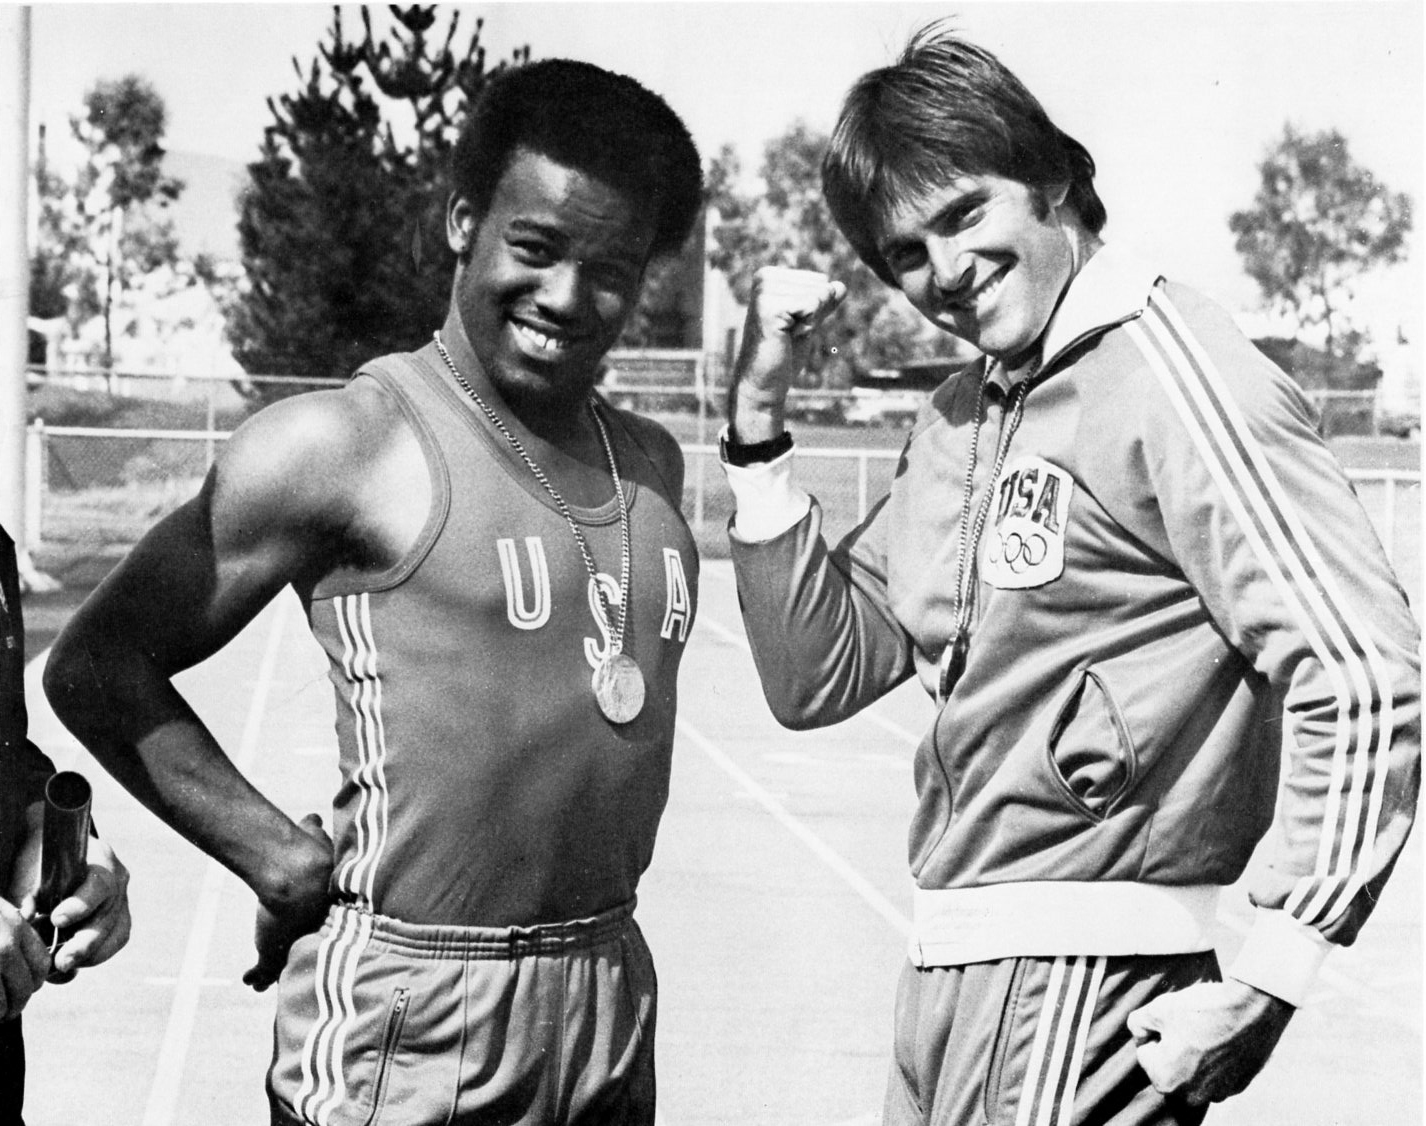 Hampton and Jenner with Olympic Gold medals